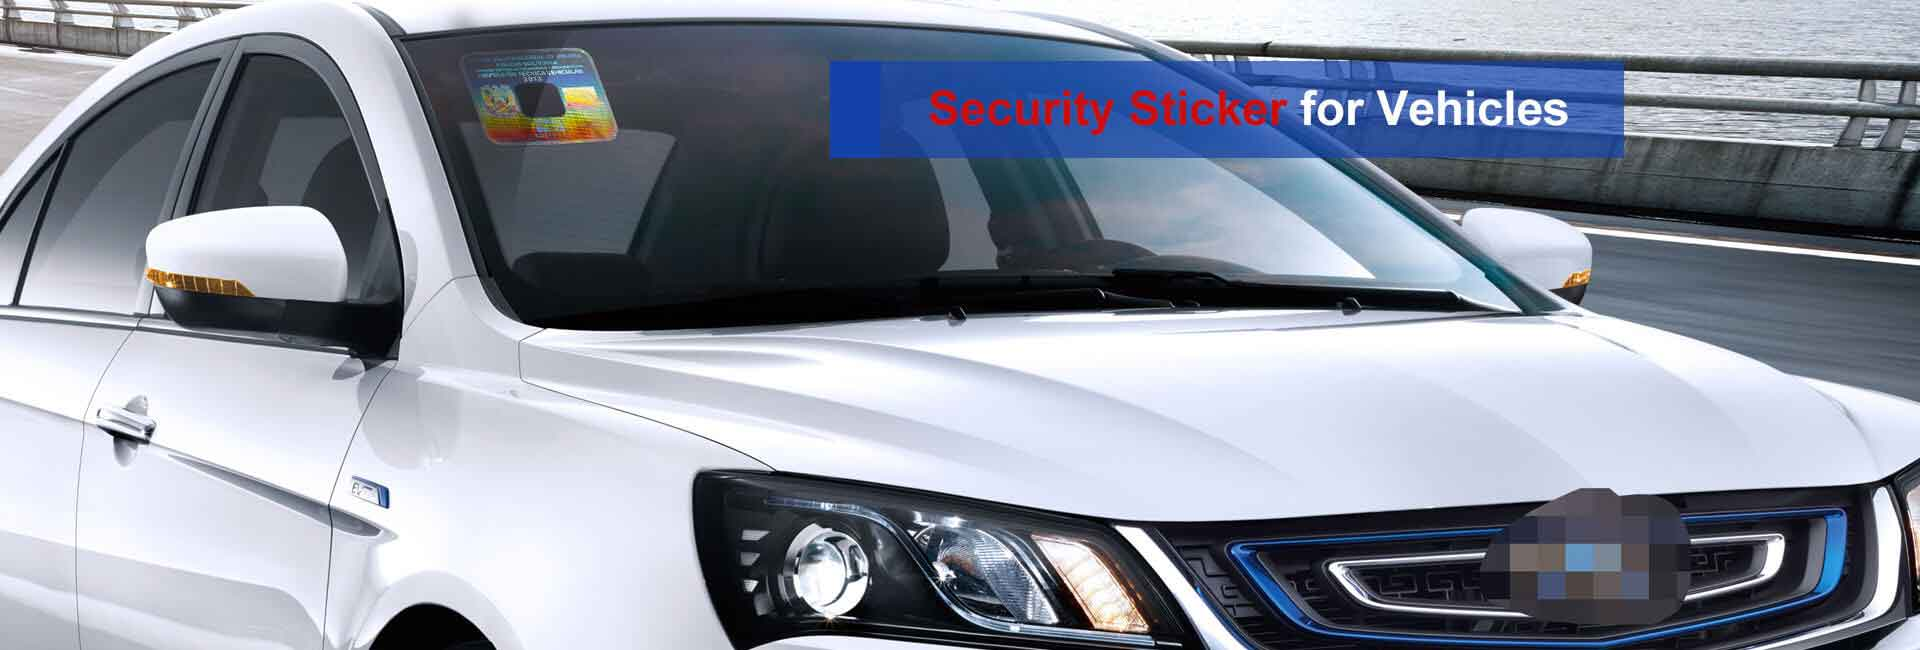 Hologram-Security-Sticker-for-Vehicle-Car-Windshield